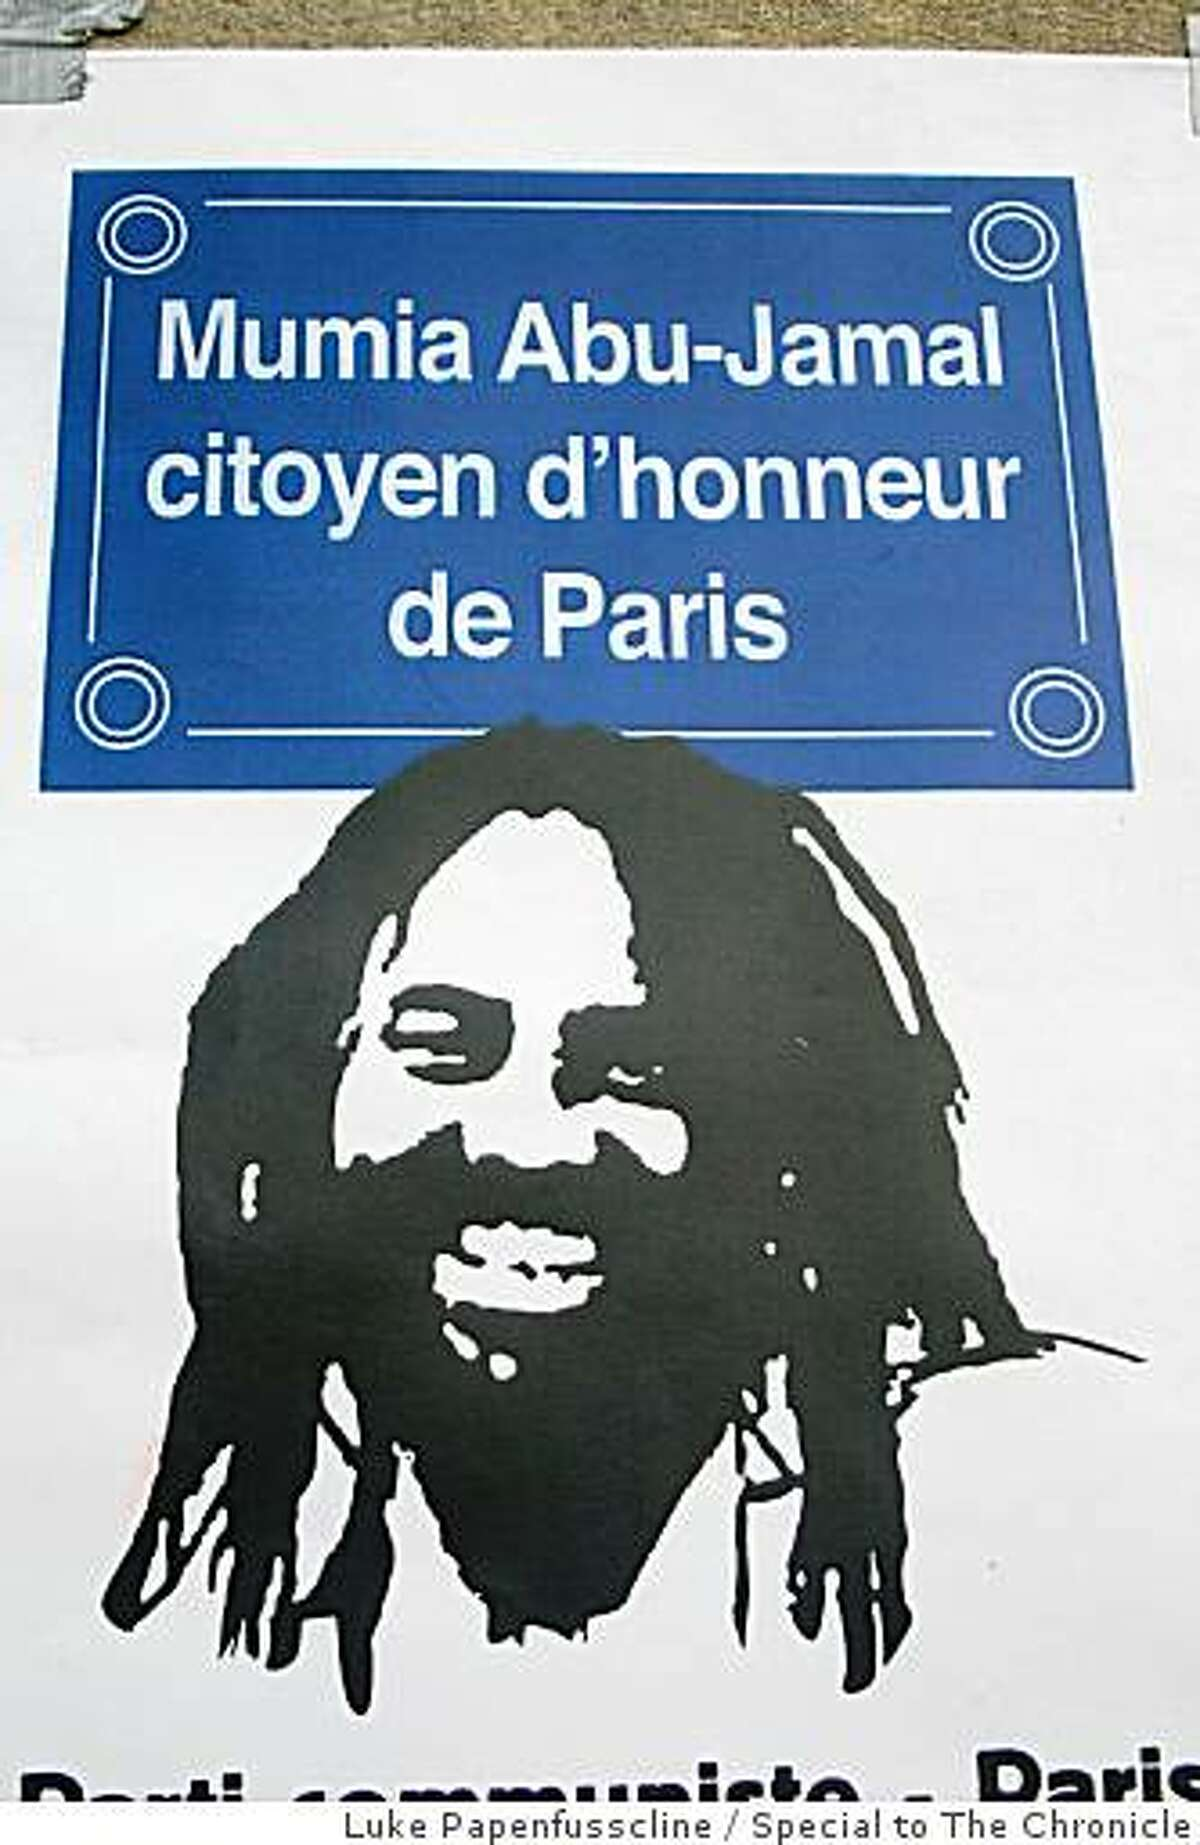 Mumia Abu-Jamal poster on Paris wall that says he is an honorary citizen of Paris.